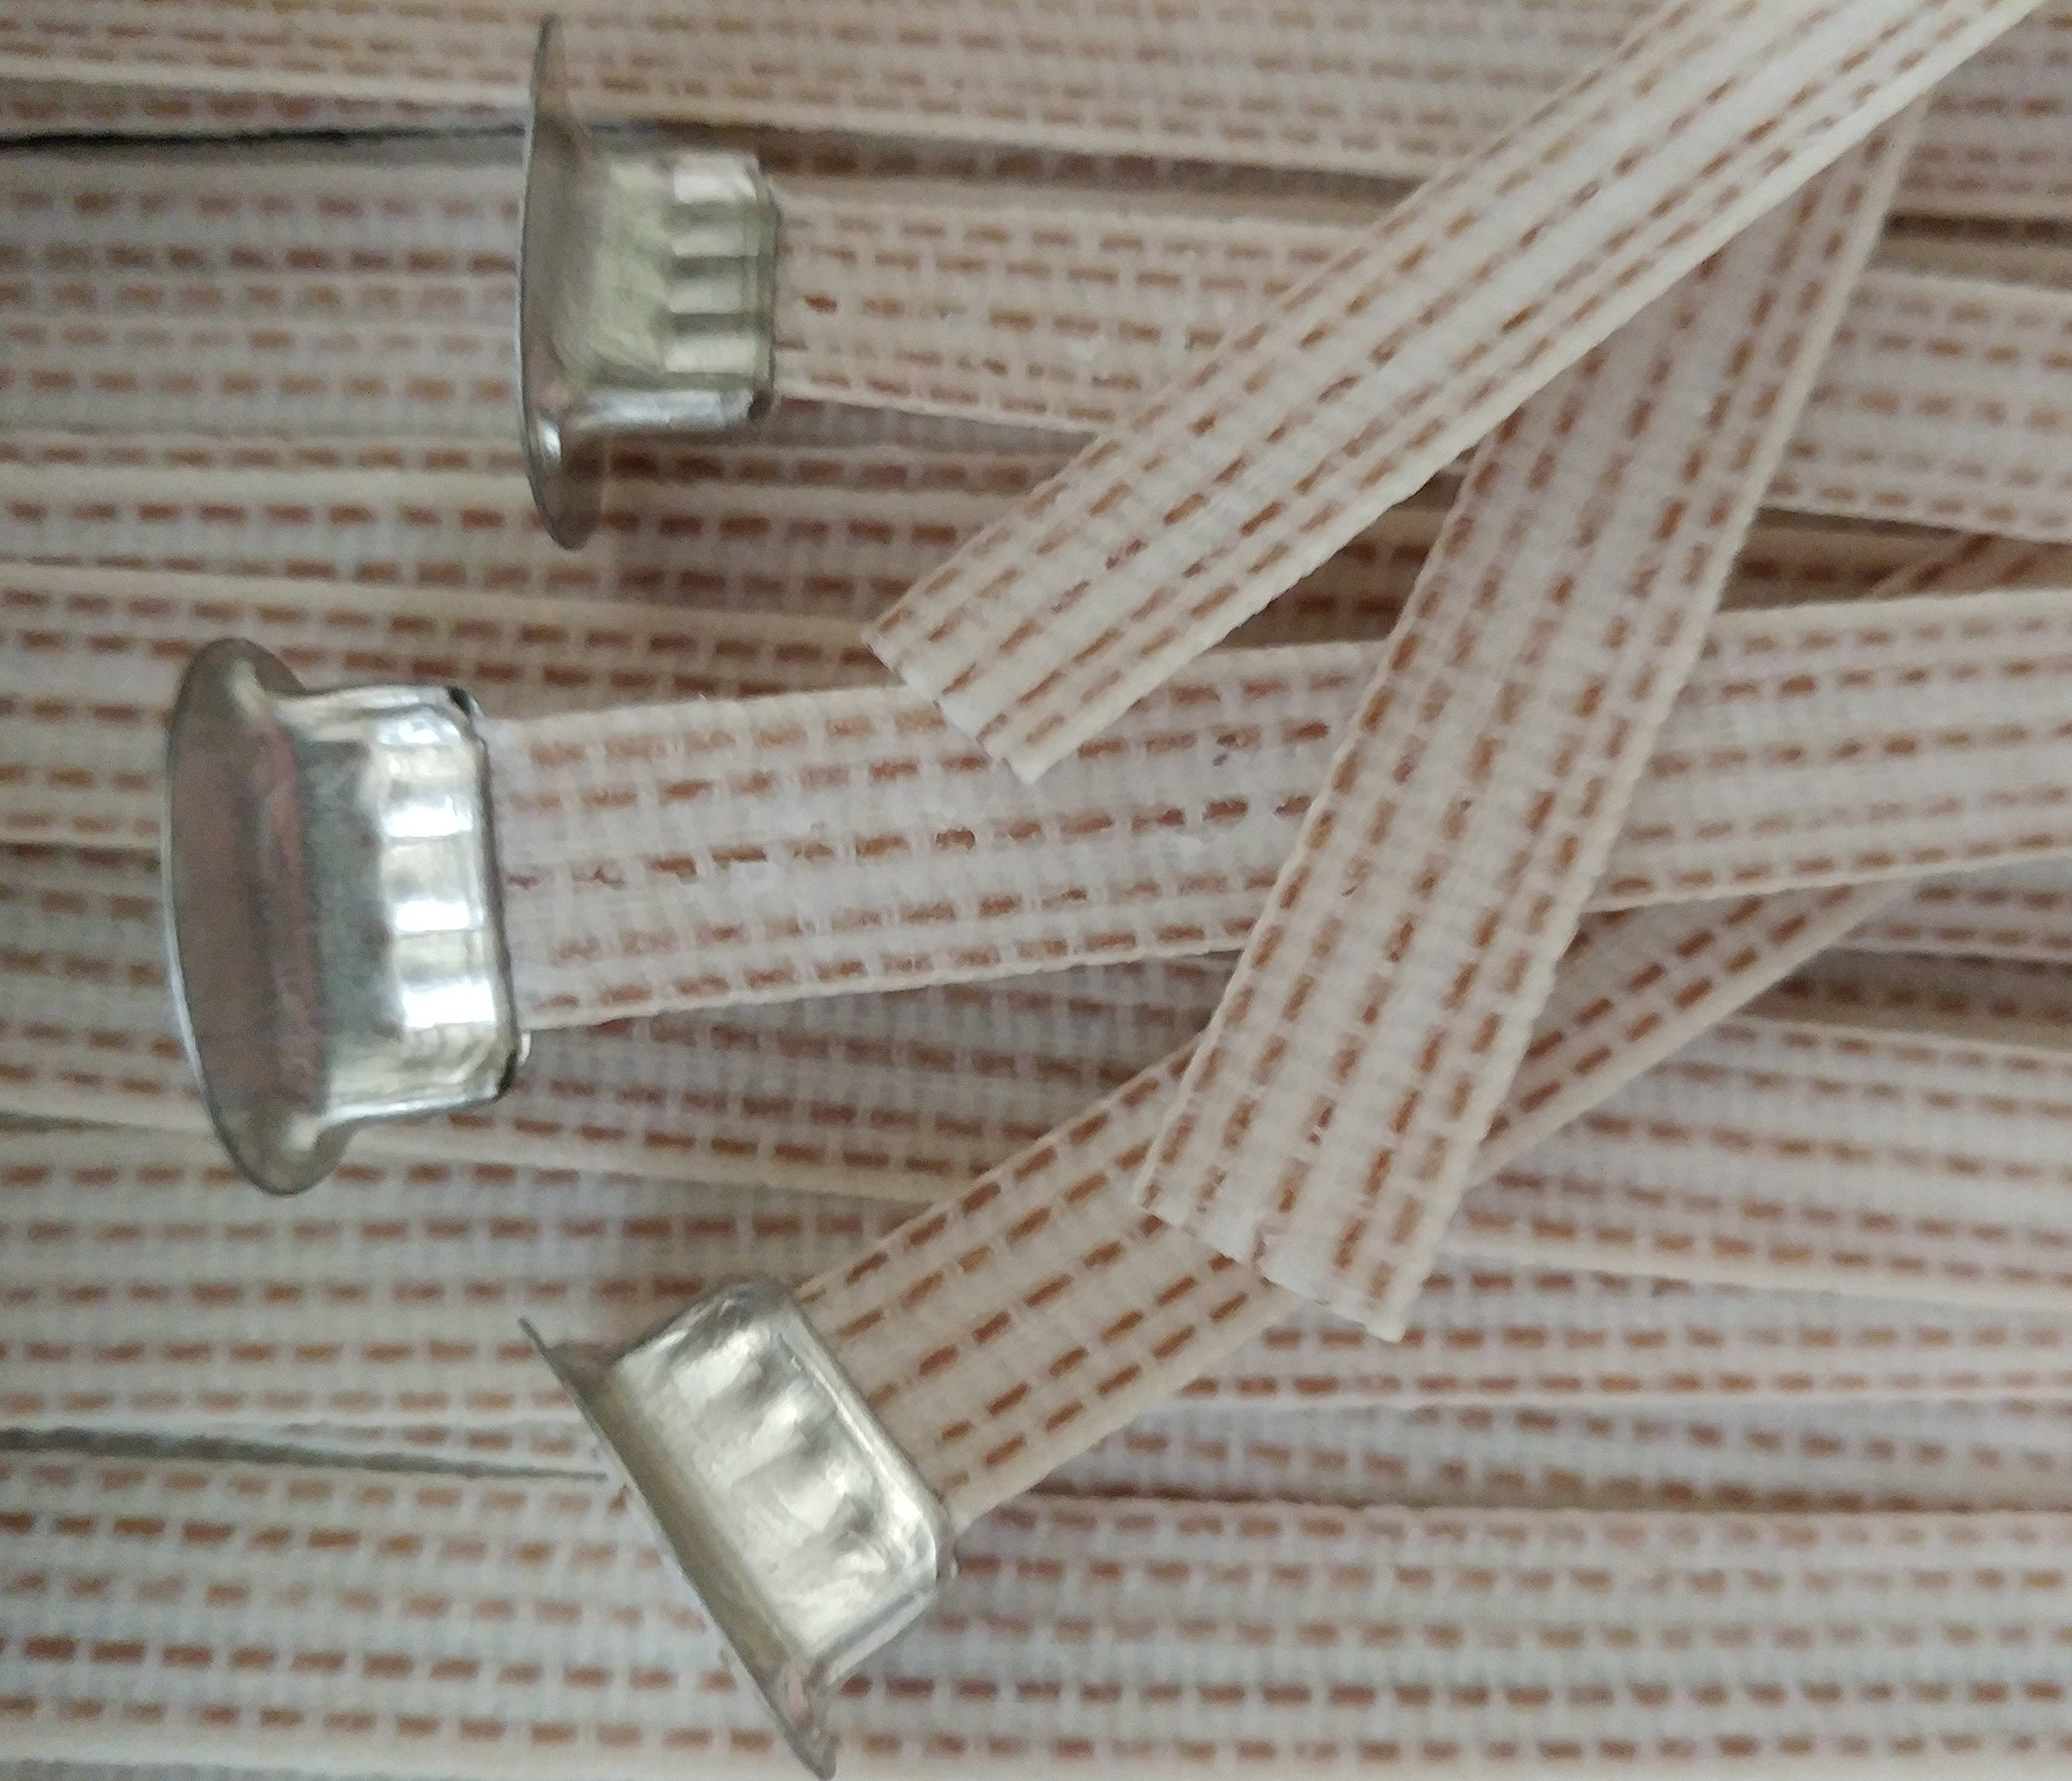 Ribbon Candle Wicks - 10pk - Cotton Candle Wicks - Wholesale Candle Wicks & Supplies (Medium)